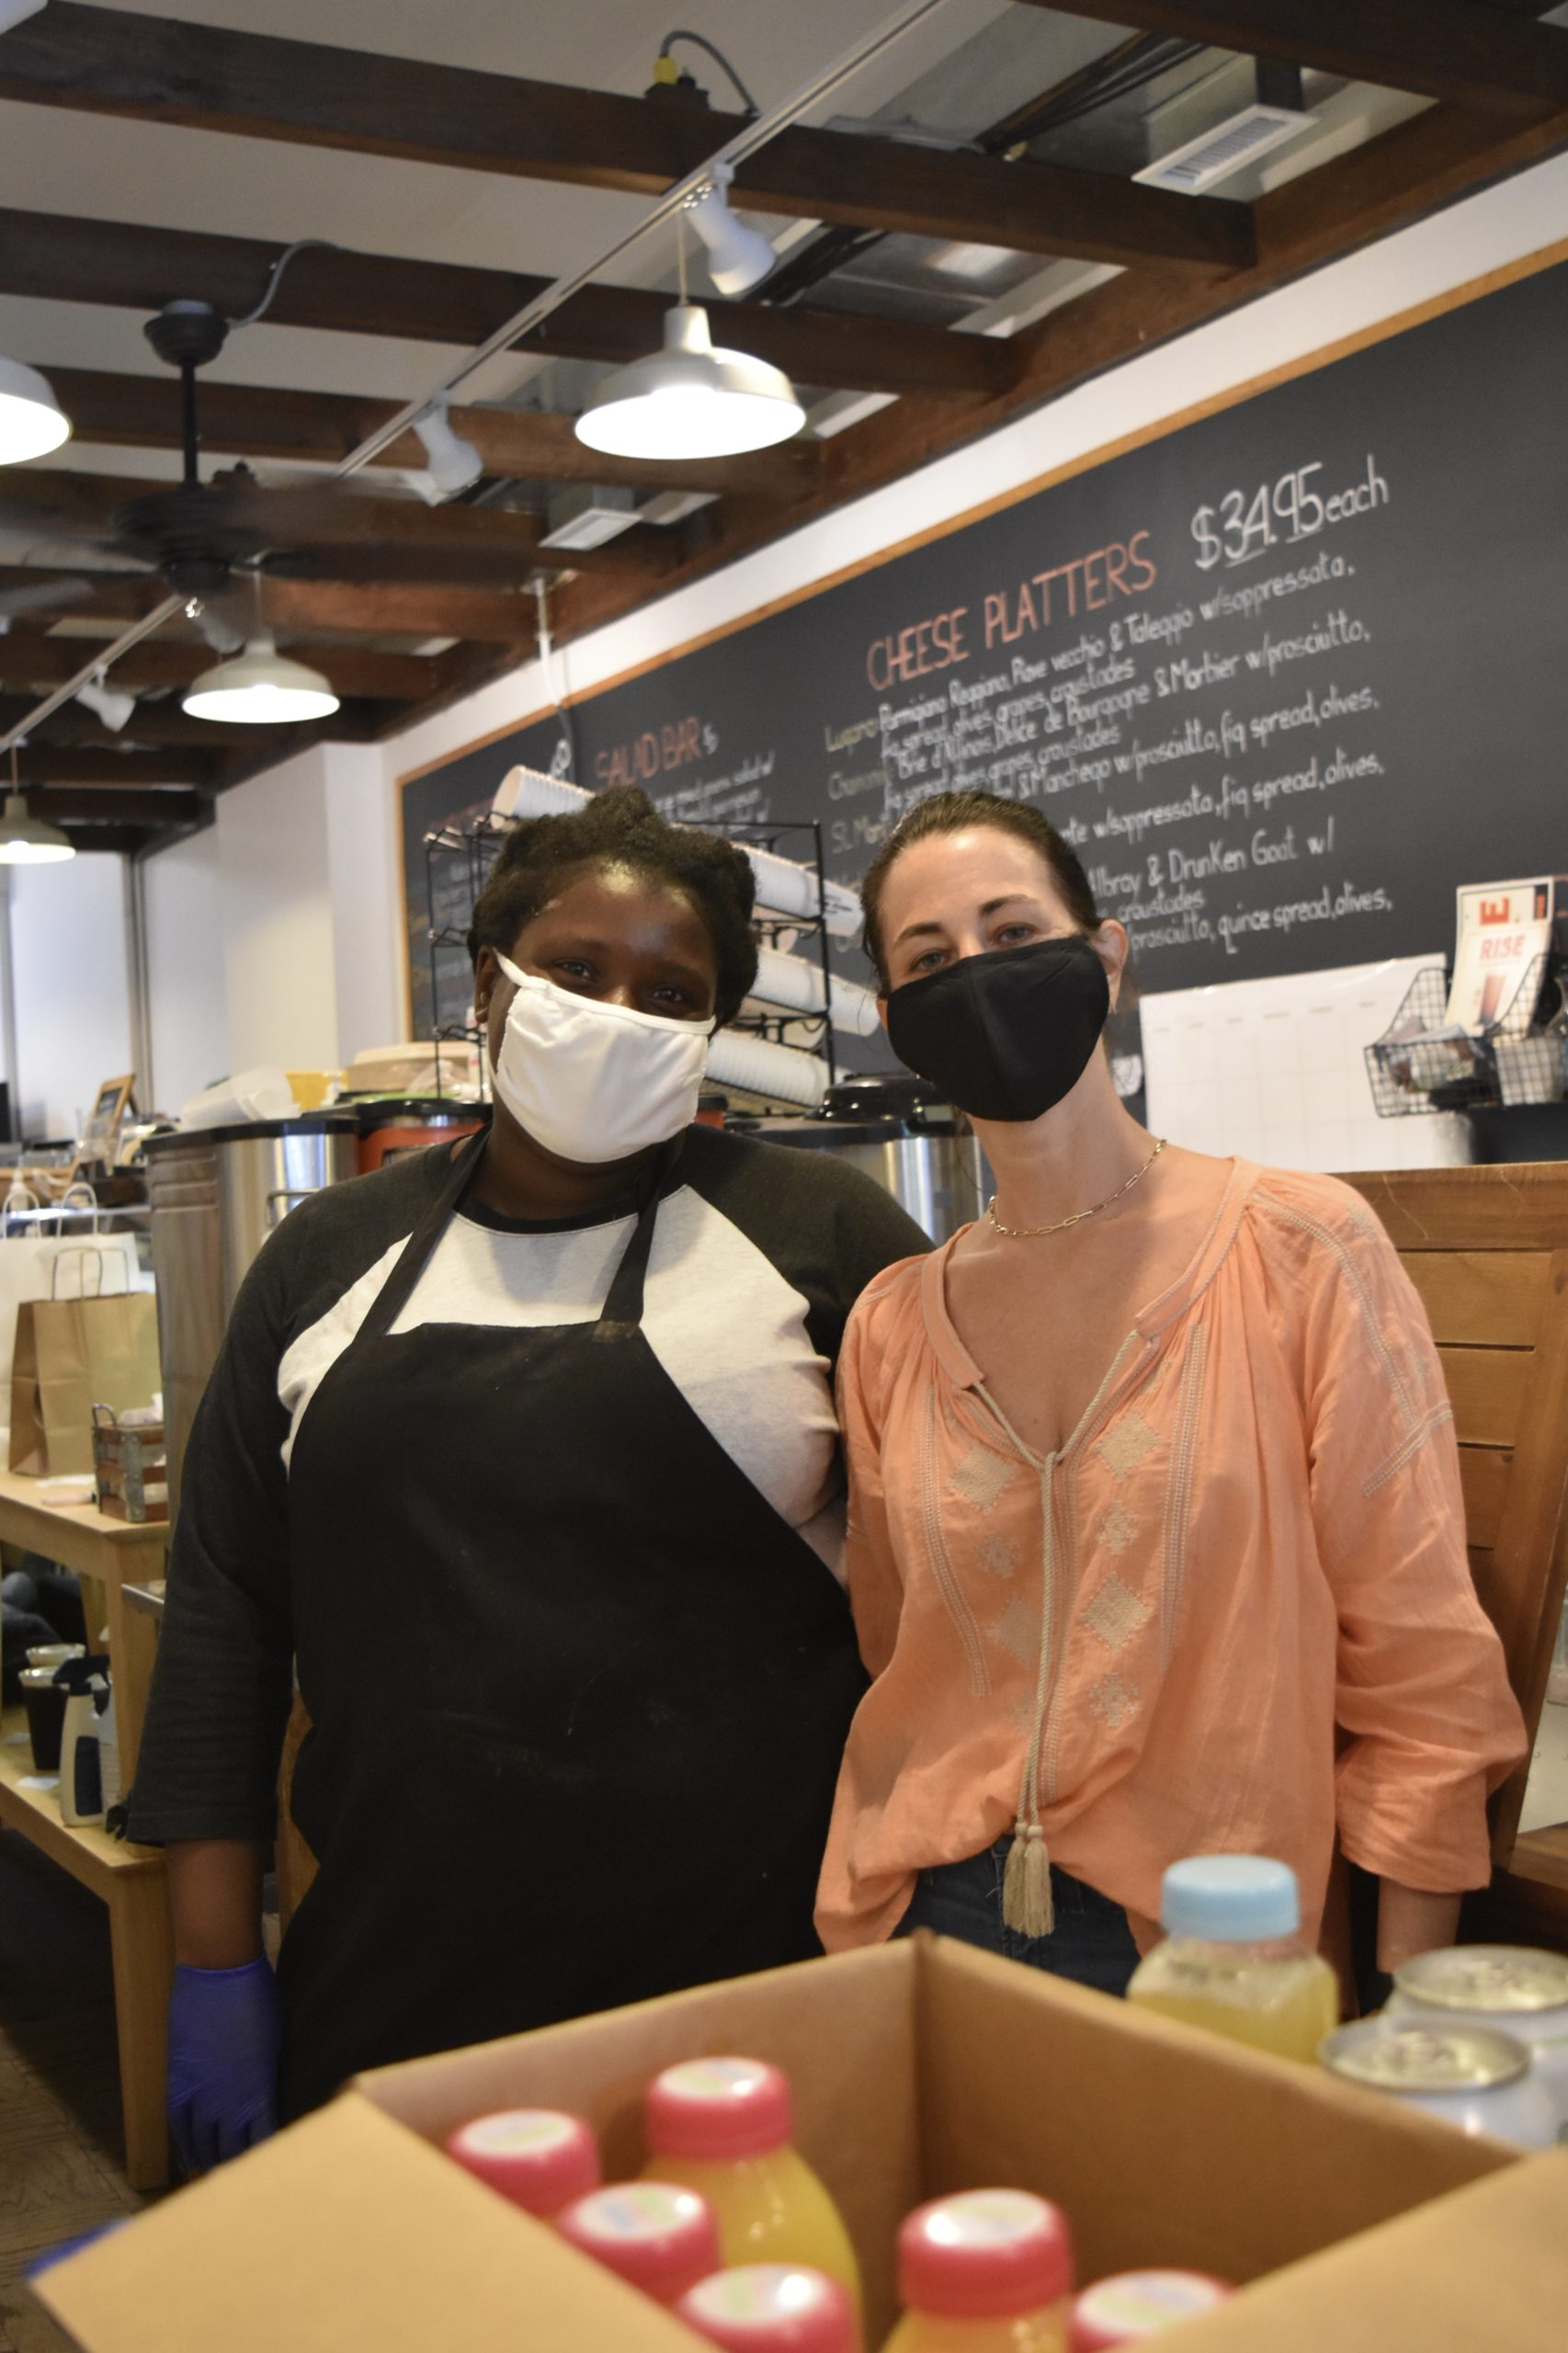 Southampton Village Cheese Shoppe Owner Nikki Cascone-Grossman and General Manager Nikita Easie have struggled to find staffing for the summer in the wake of Trump's ban on foreign work visas.